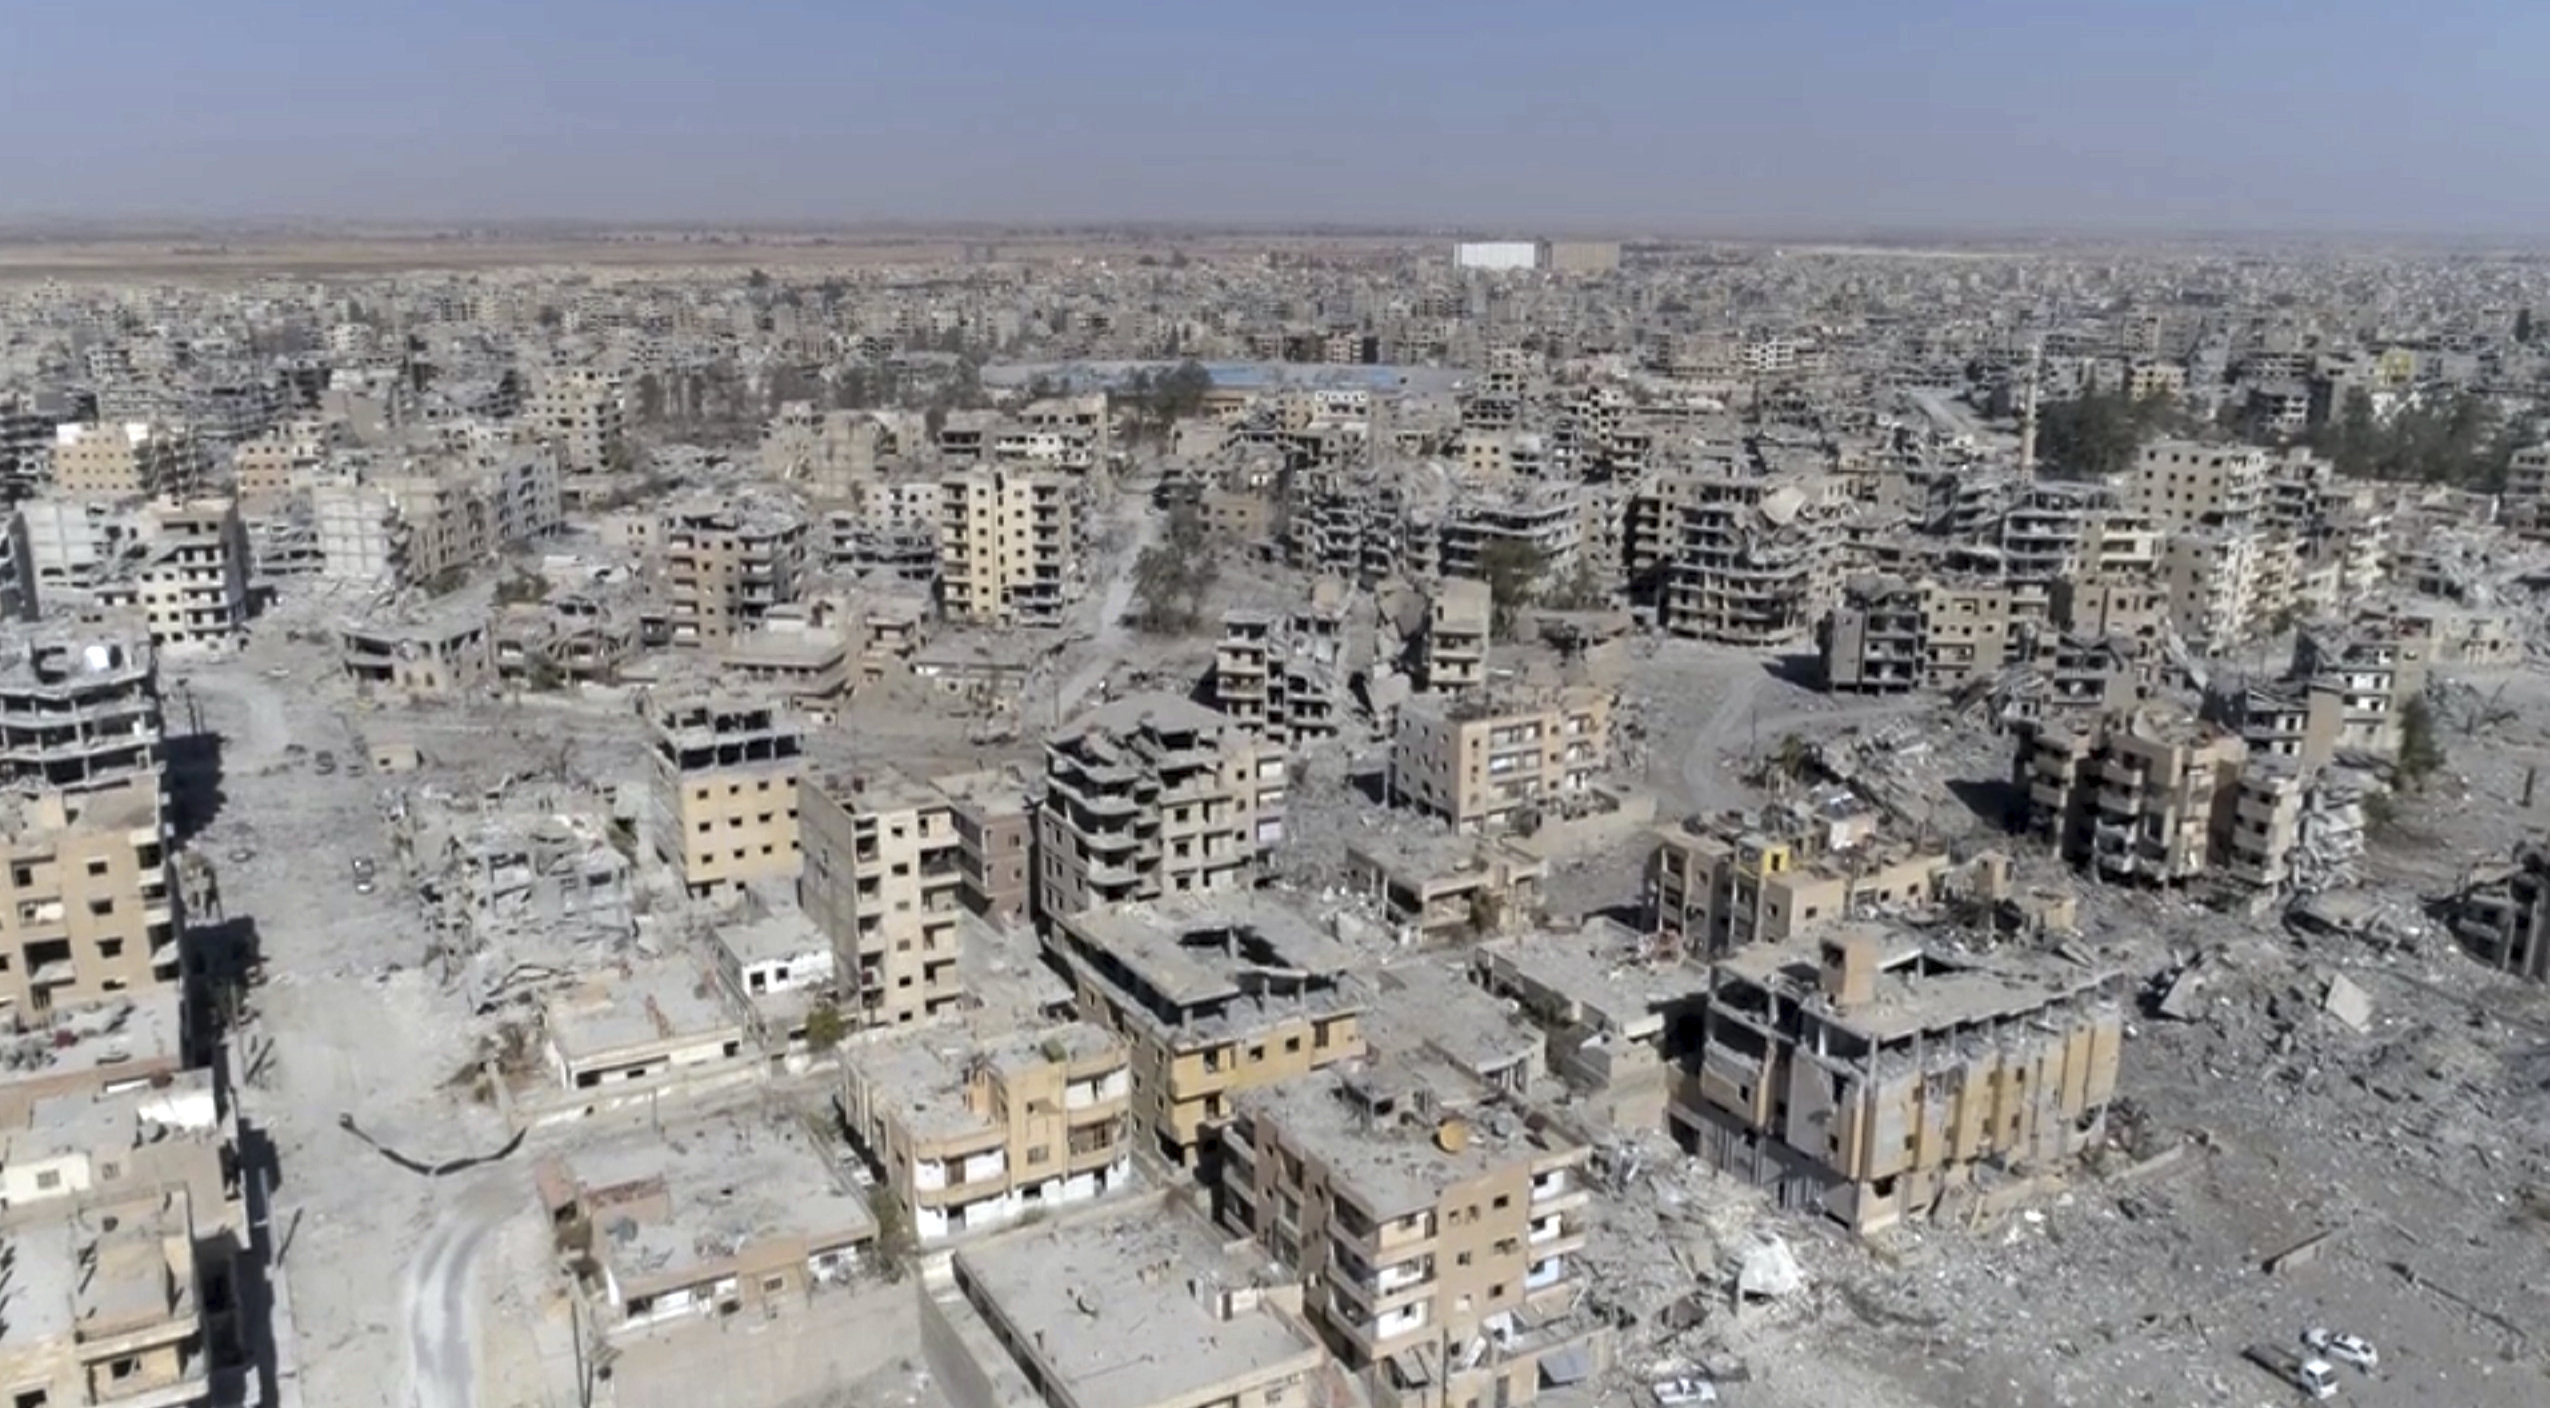 (File) This Thursday, Oct. 19, 2017 frame grab made from drone video shows damaged buildings in Raqqa, Syria